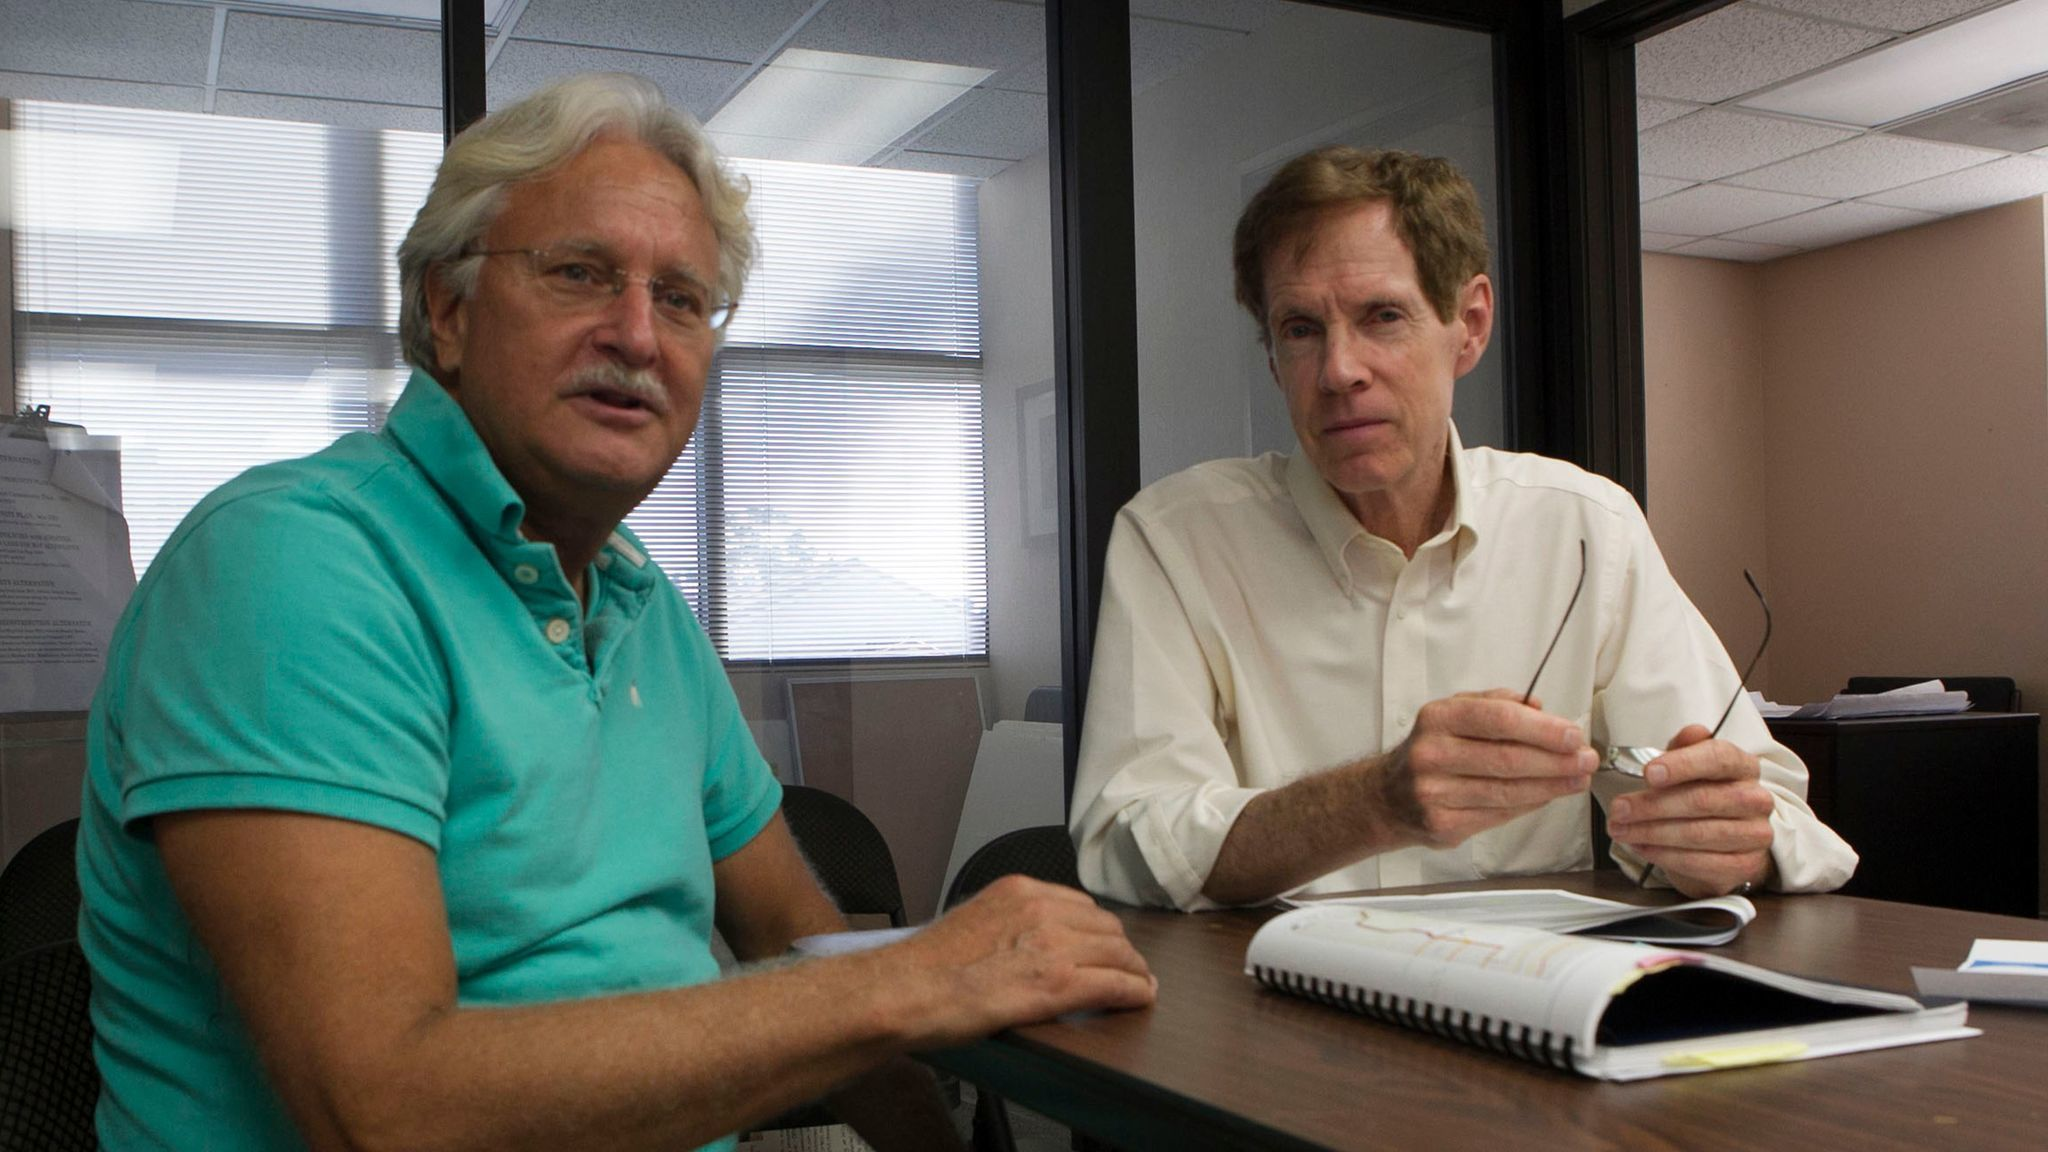 Uptown United founder Tom Mullaney and Roy Dahl in the group's office.